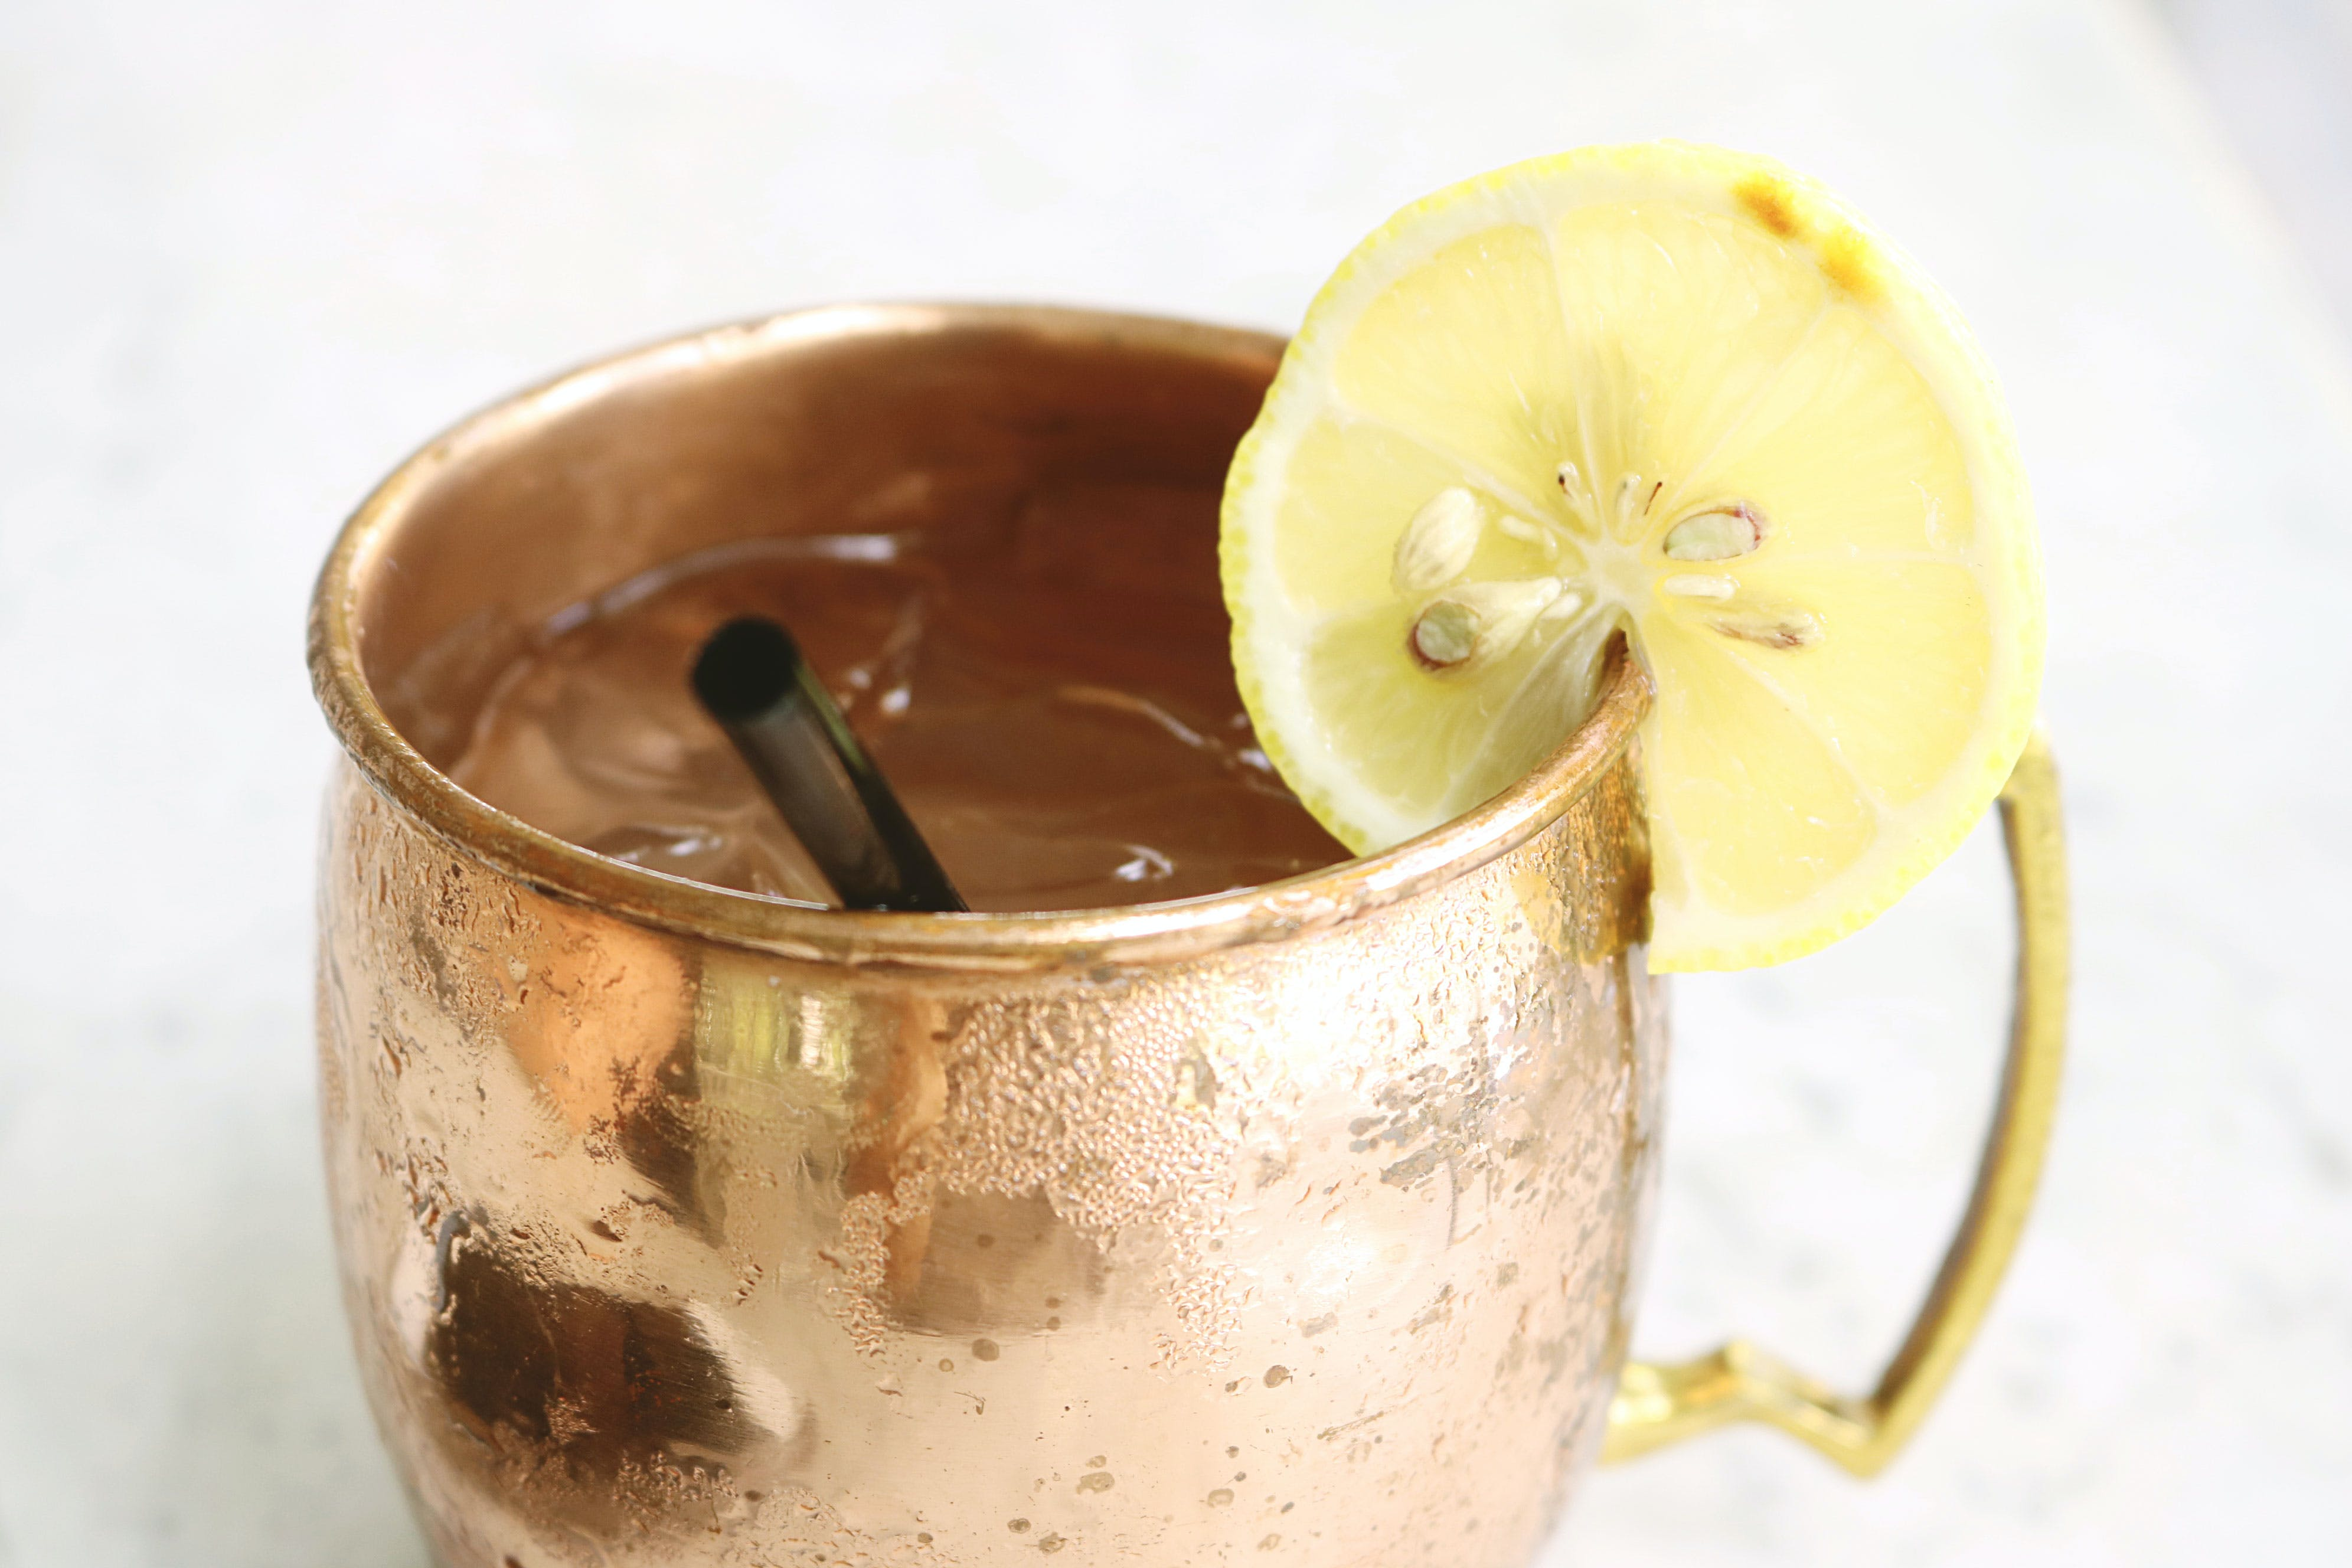 Brass Mug Filled With Clear Liquid and Slice of Lemon